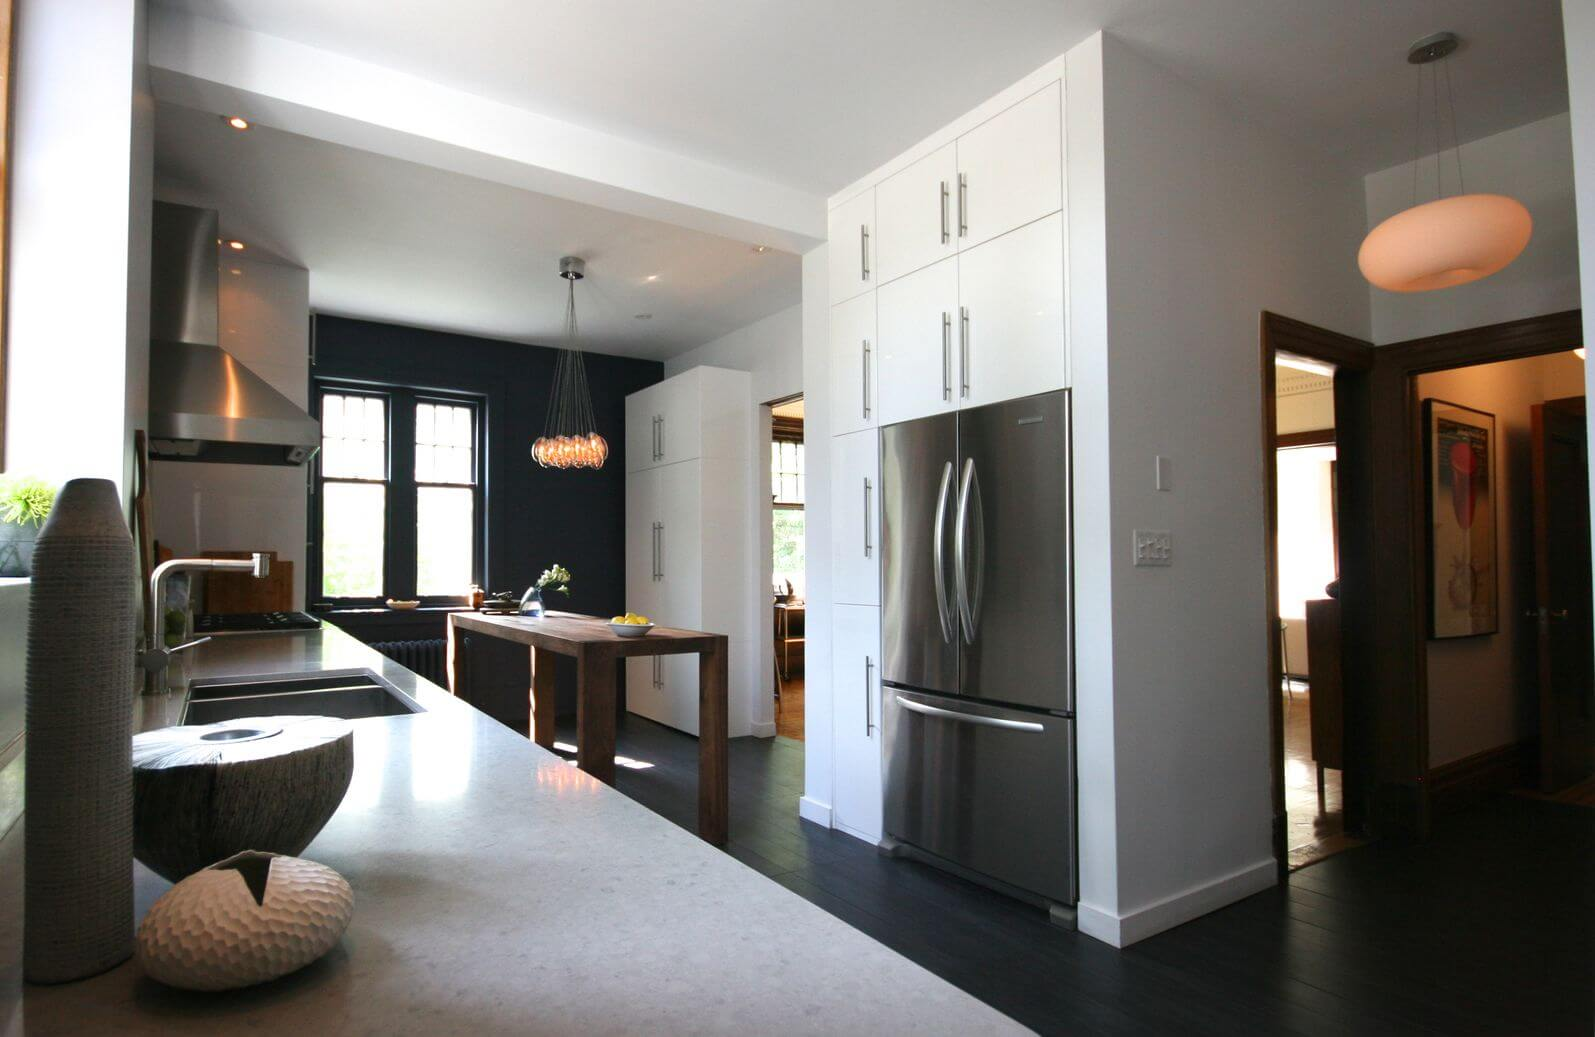 White Galley Kitchen With Black Appliances 40 inviting contemporary custom kitchen designs & layouts